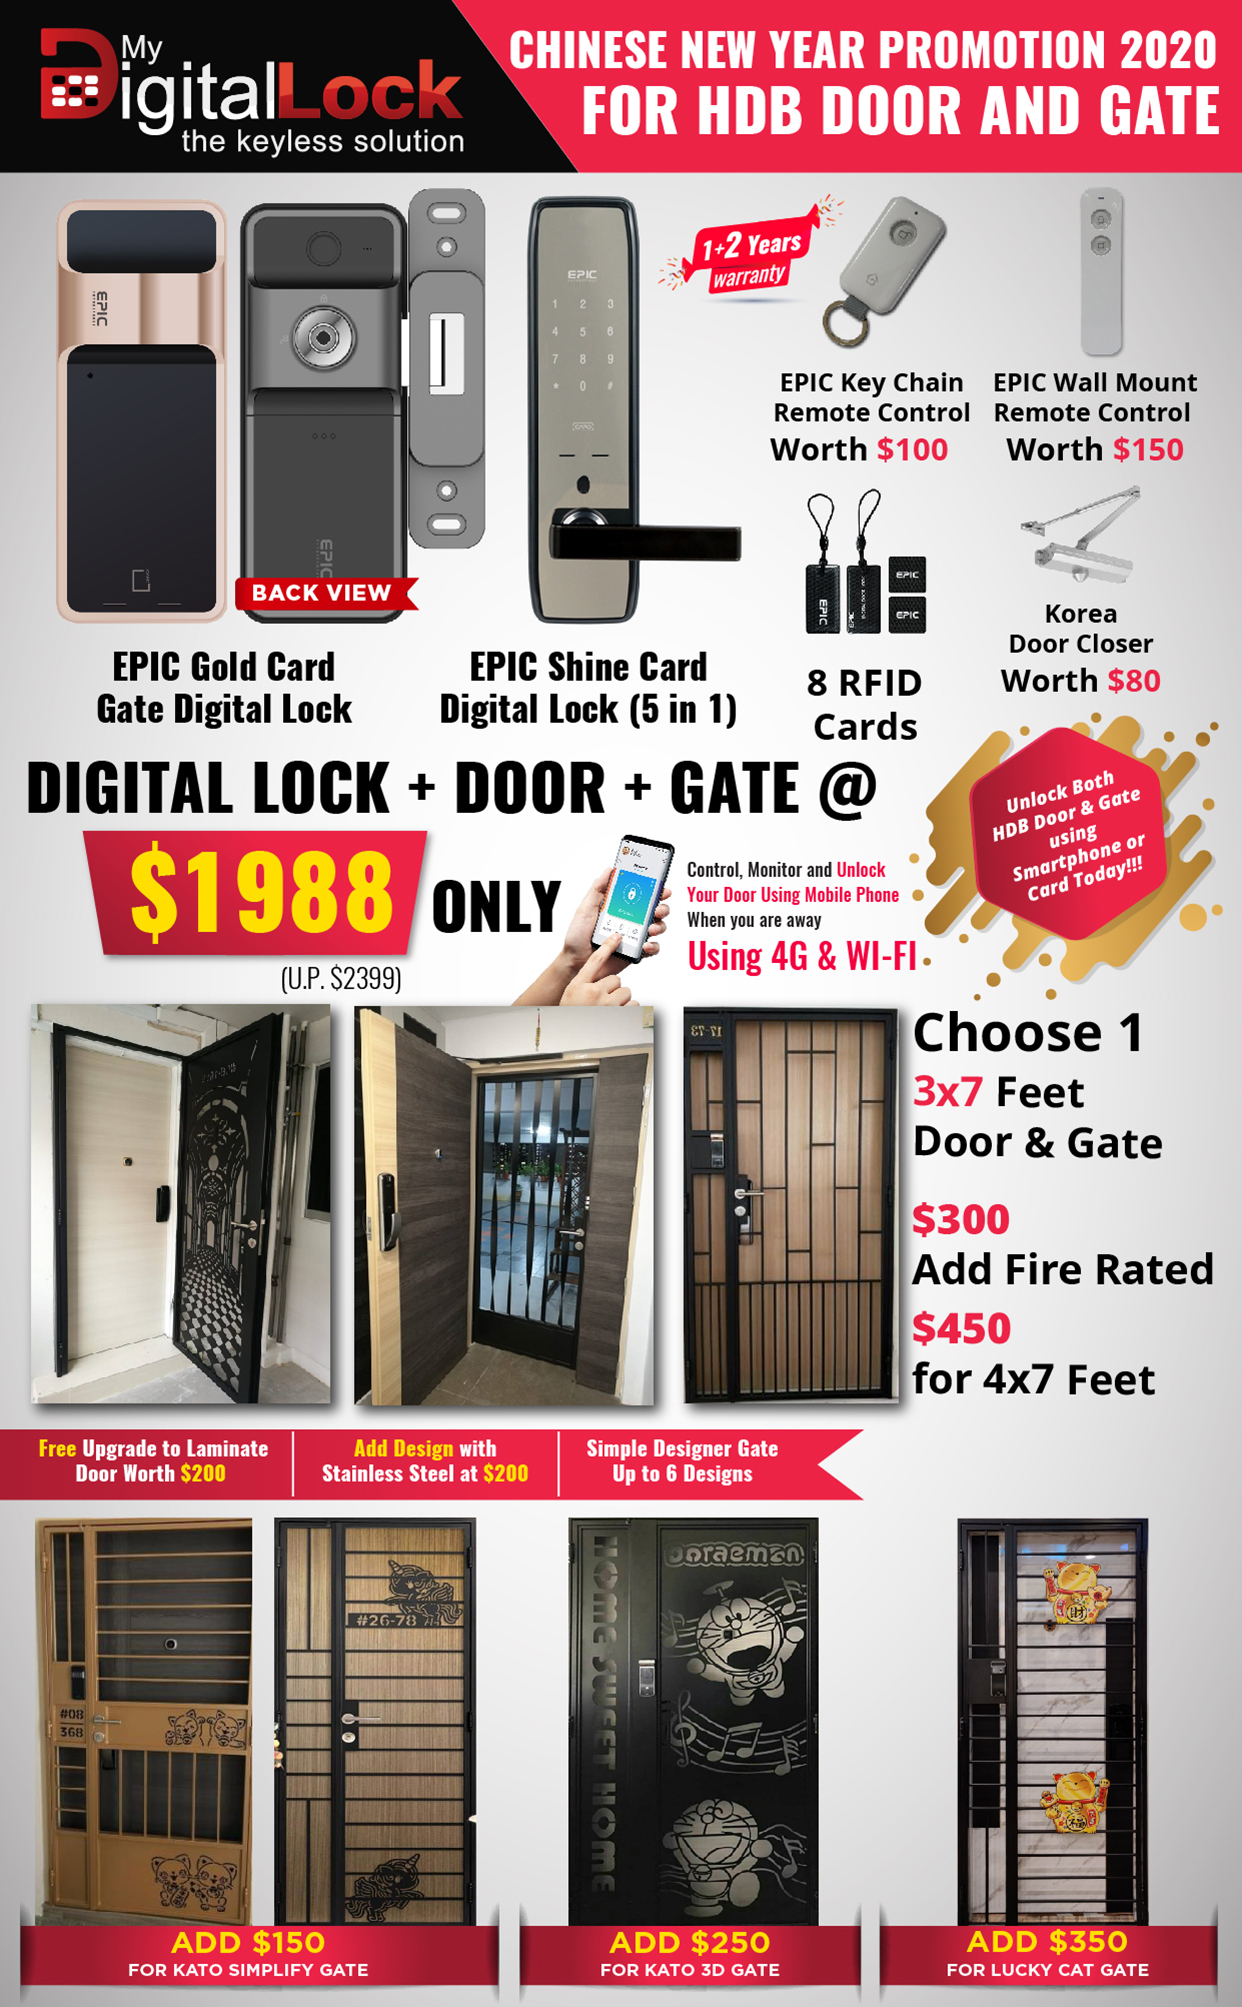 Buy EPIC Shine Card Digital Lock @ My Digital Lock. Call 9067 7990